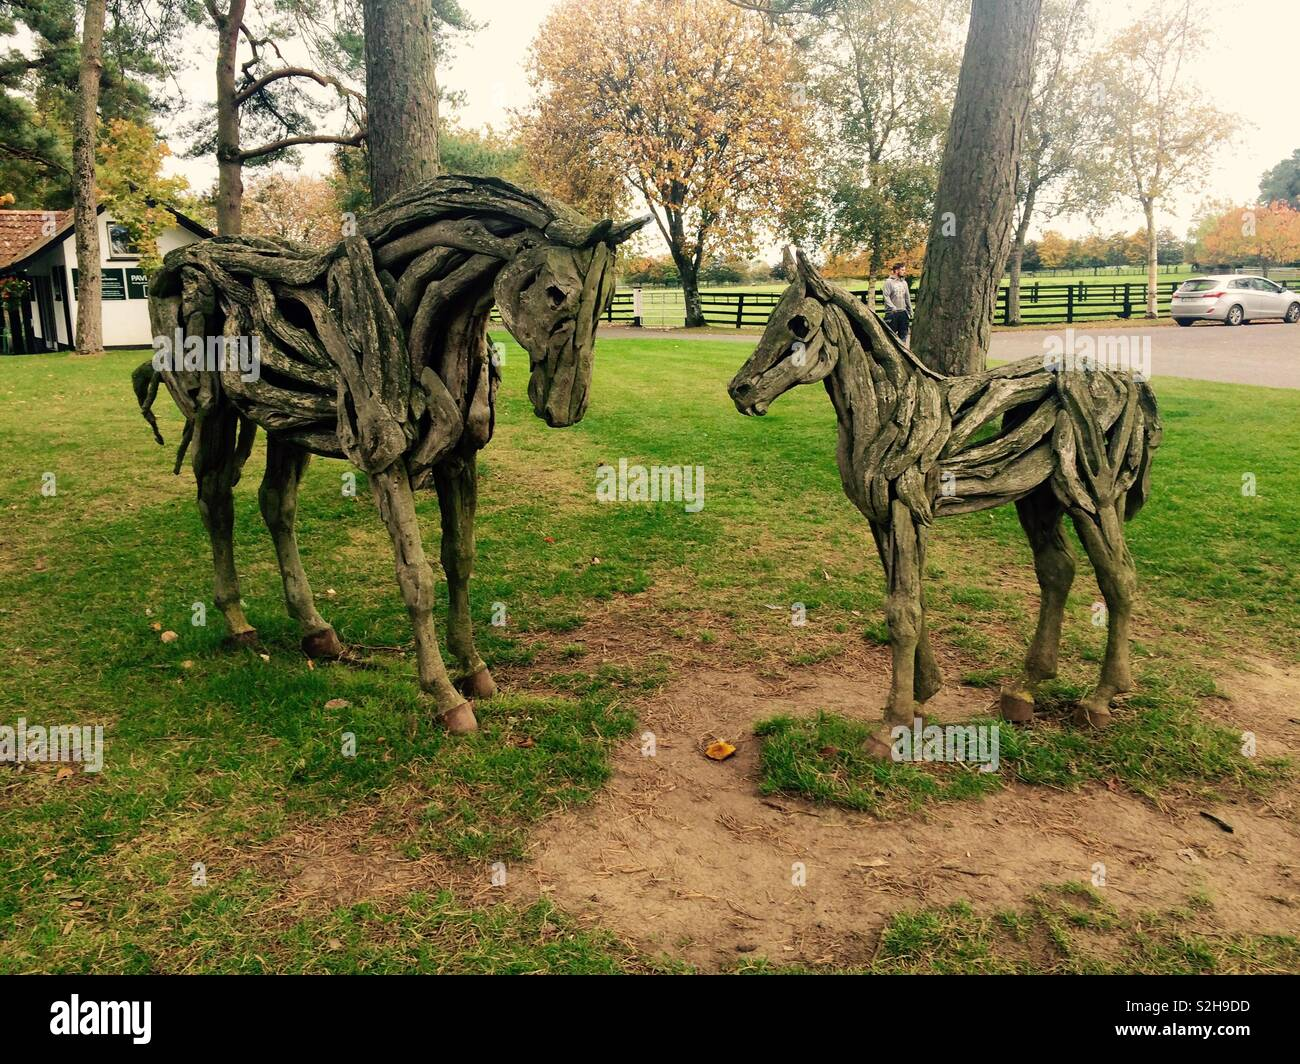 Rustic Wooden Horse Sculpture In The Gardens Of The Irish National Stud In Kildare Ireland Stock Photo Alamy